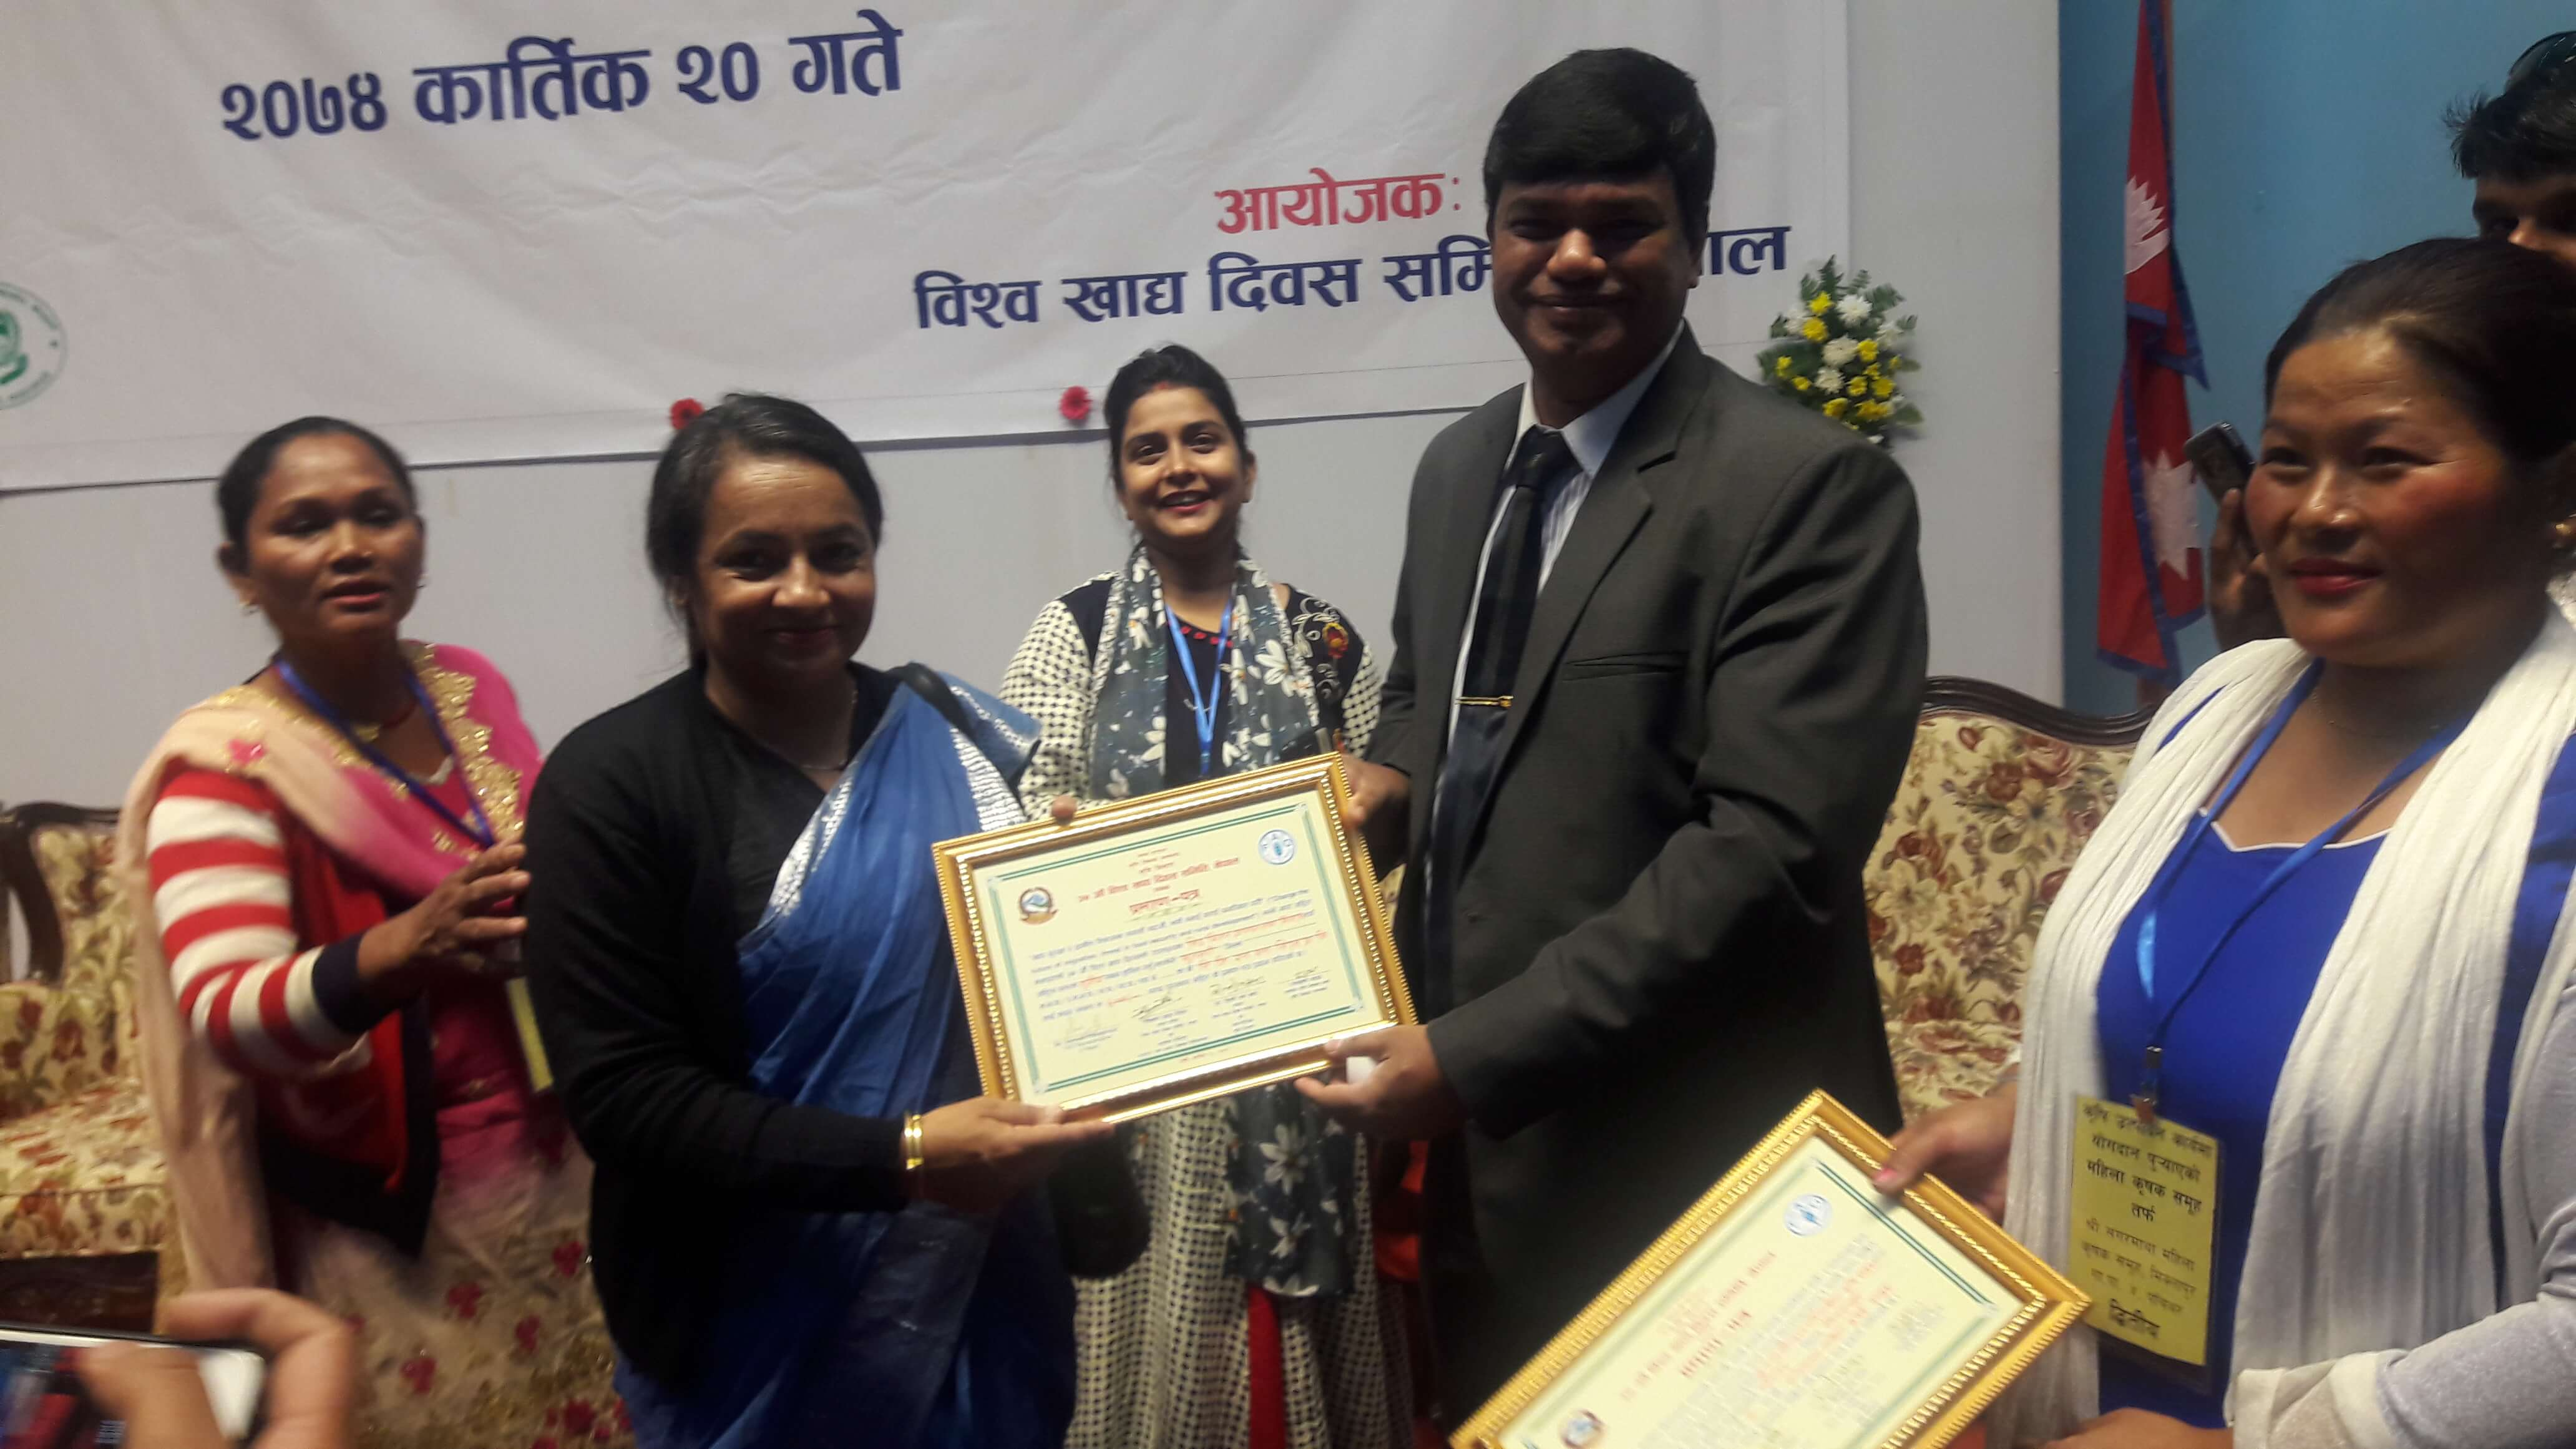 Award received from Agriculture Minister 4